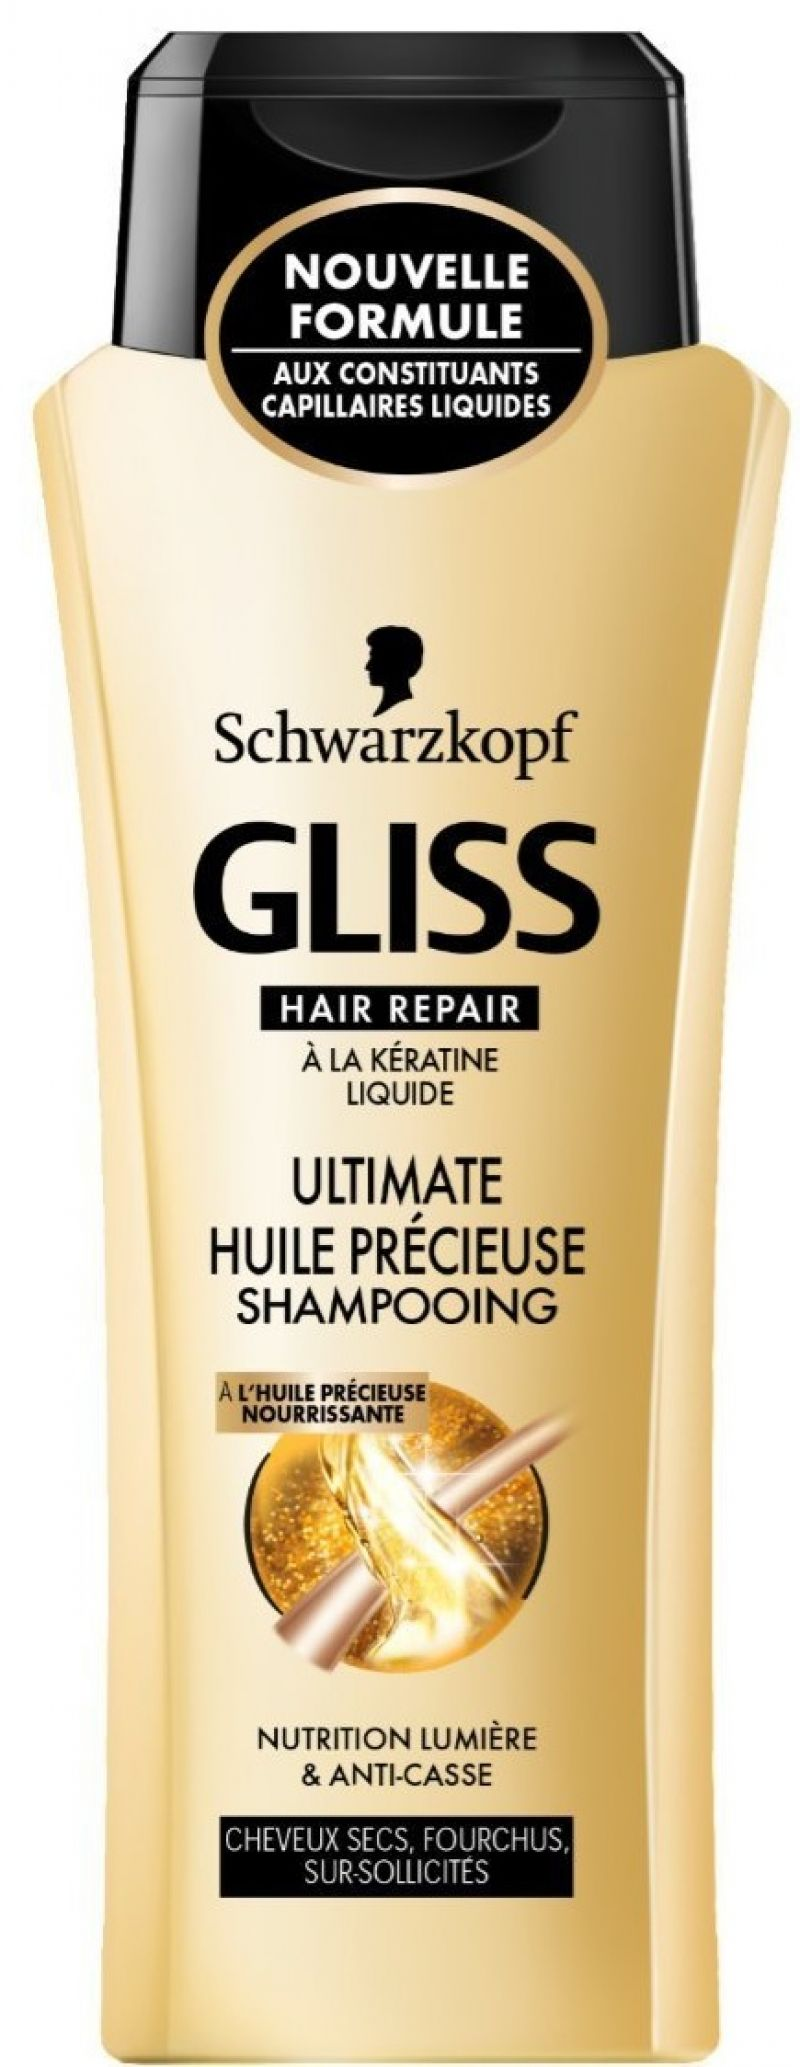 Shampooing Gliss Hair Repair Ultimate Huile Précieuse, Schwarzkopf : sofasong aime !